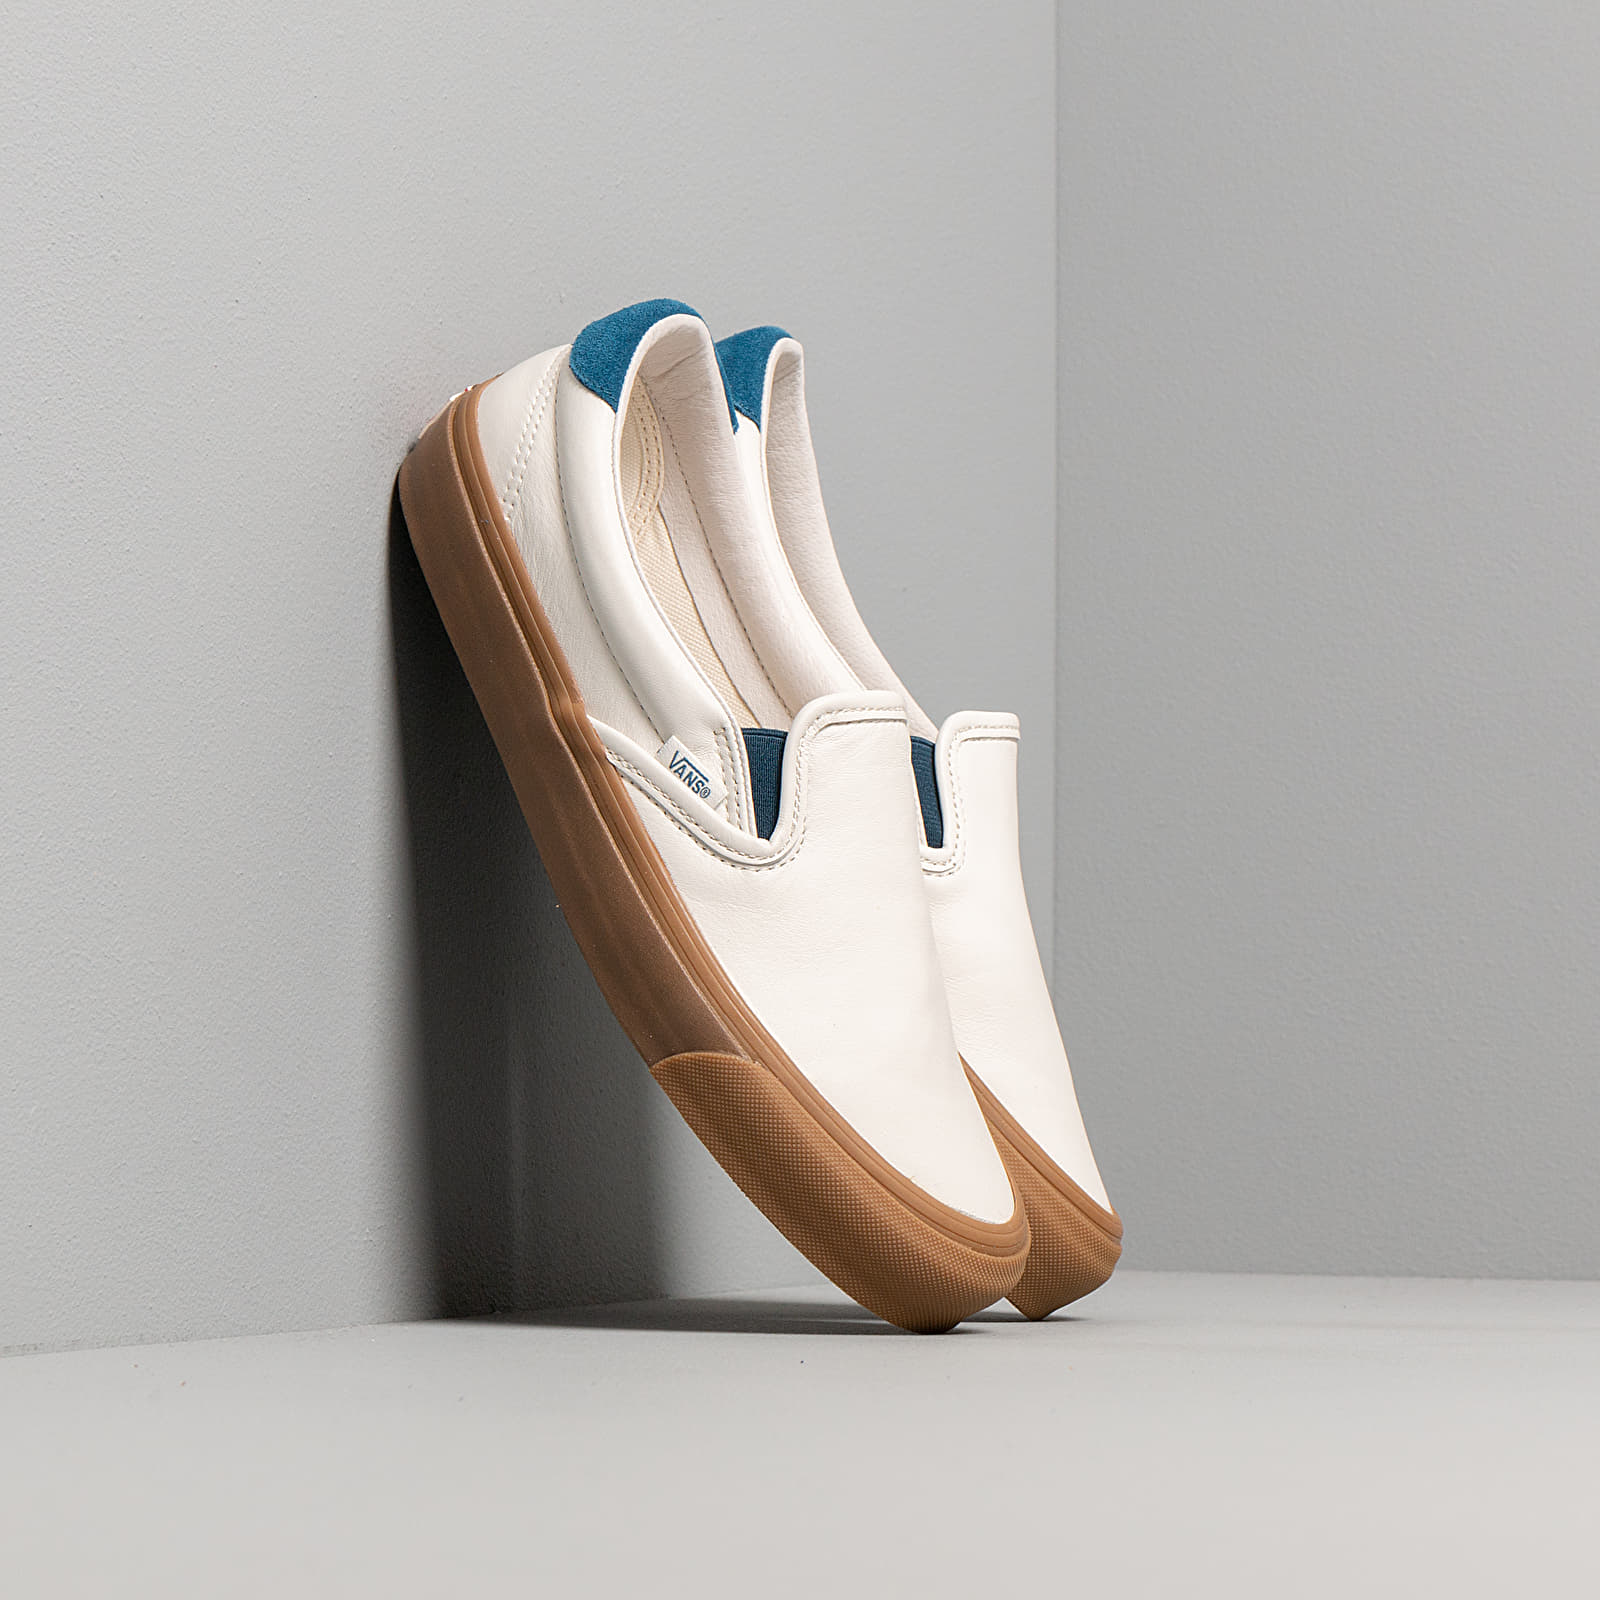 Chaussures et baskets homme Vans OG Slip-On 59 LX (Leather/ Suede) Marshmallow